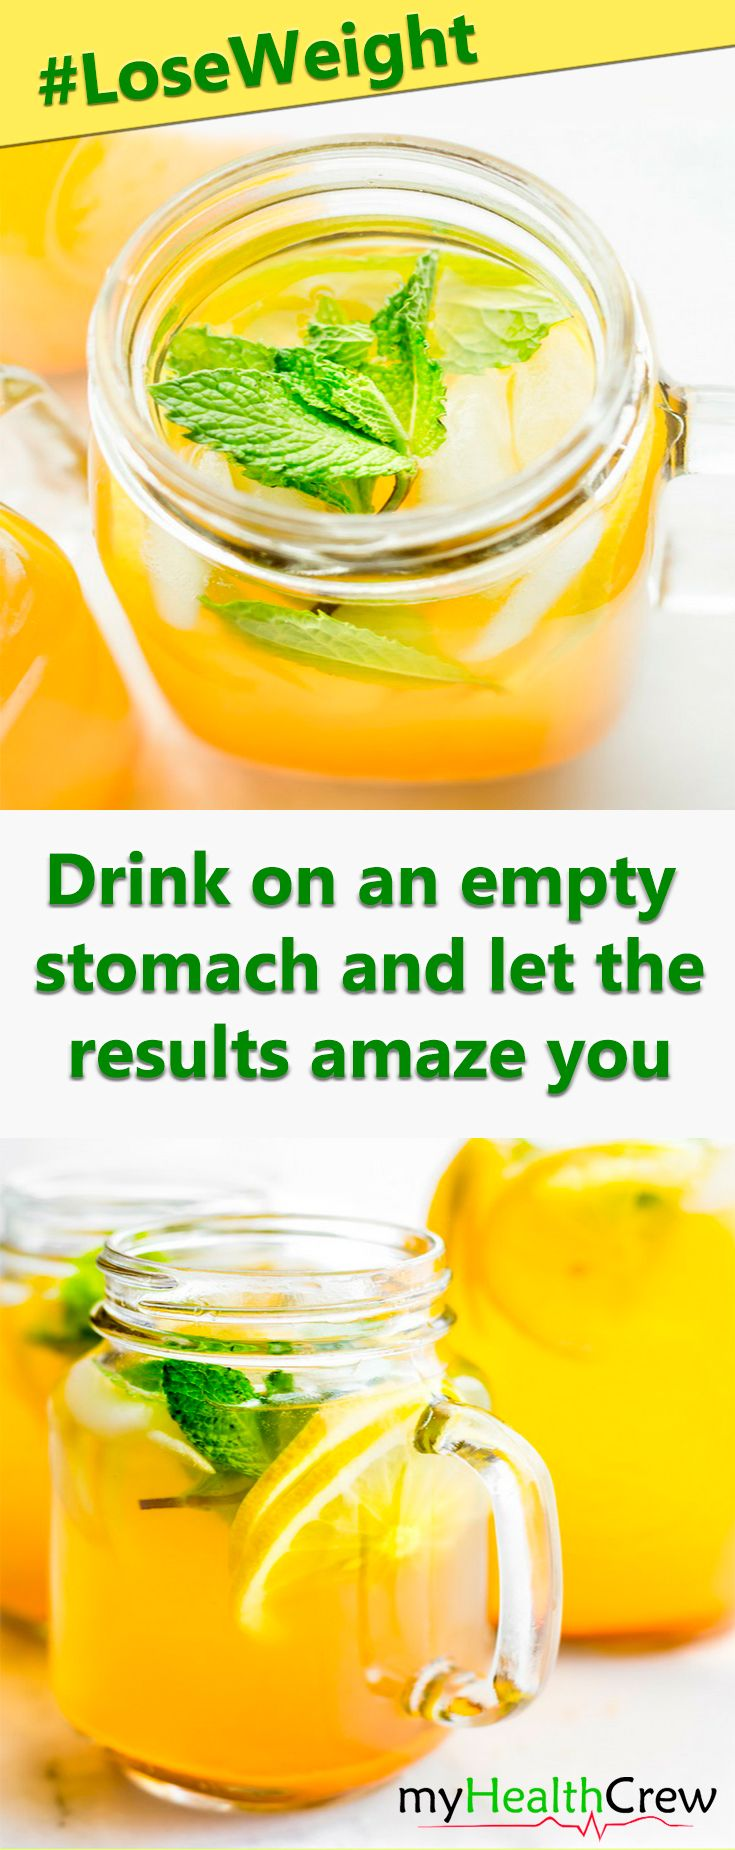 Now It's Yours! Drink every morning on an empty stomach and let the results amaze you